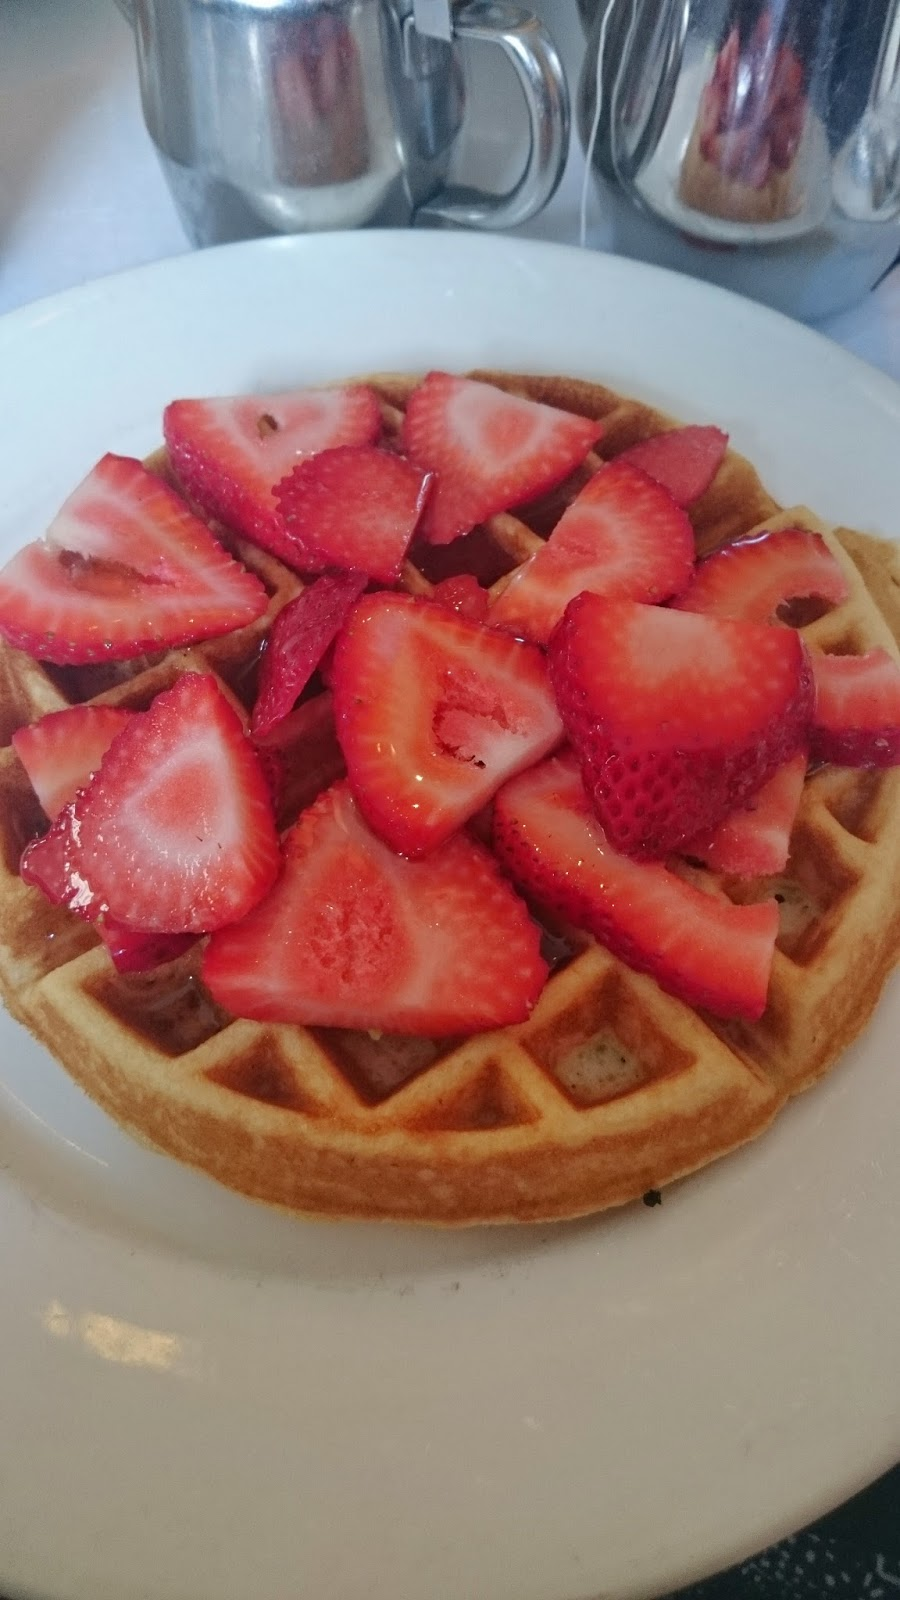 The 1428 in Haight Ashbury Strawberry Waffles